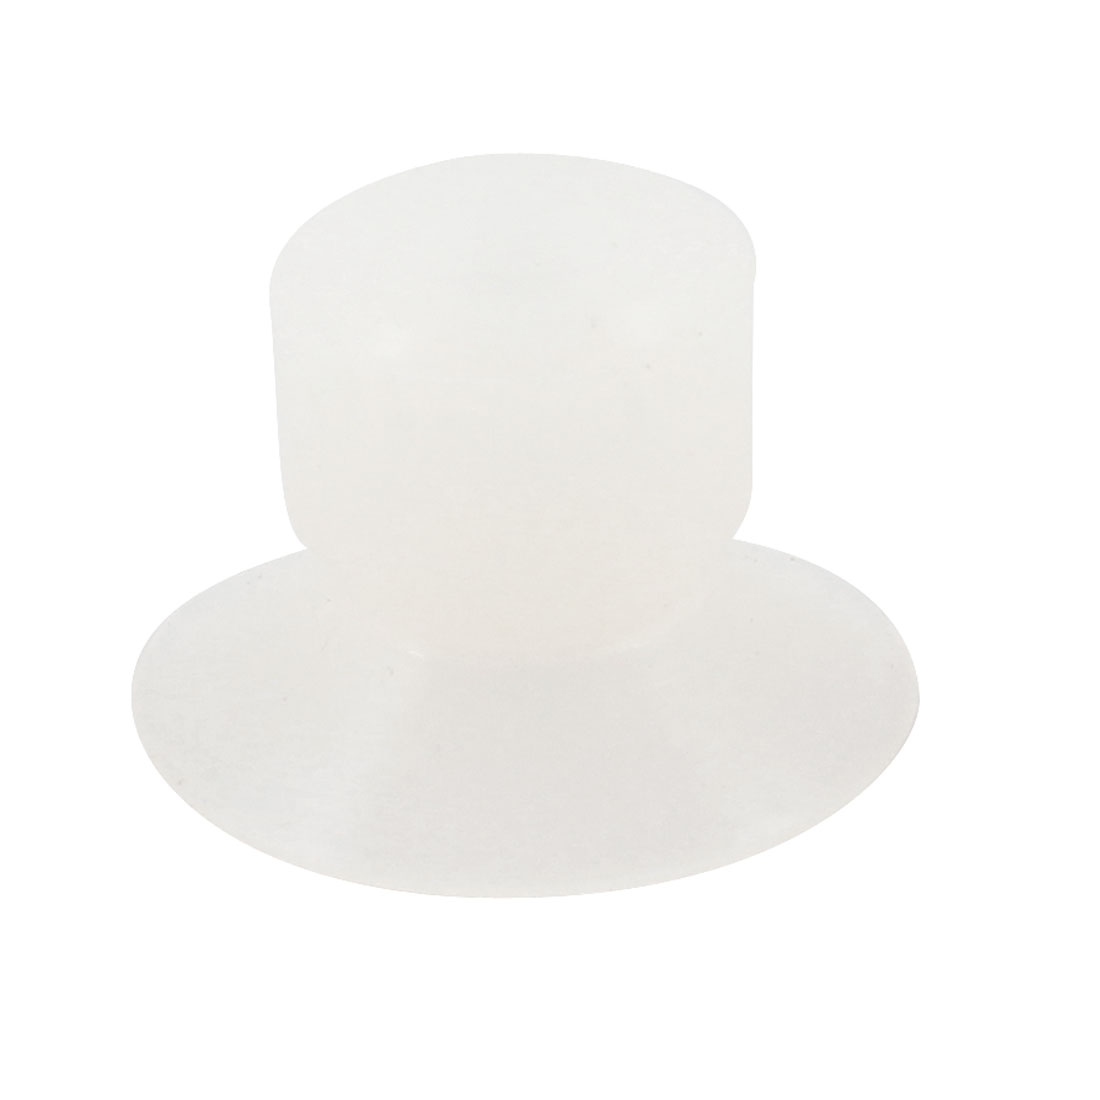 "5mm 0.2"" Inside Diameter Clear Soft Silicone Suction Cups"